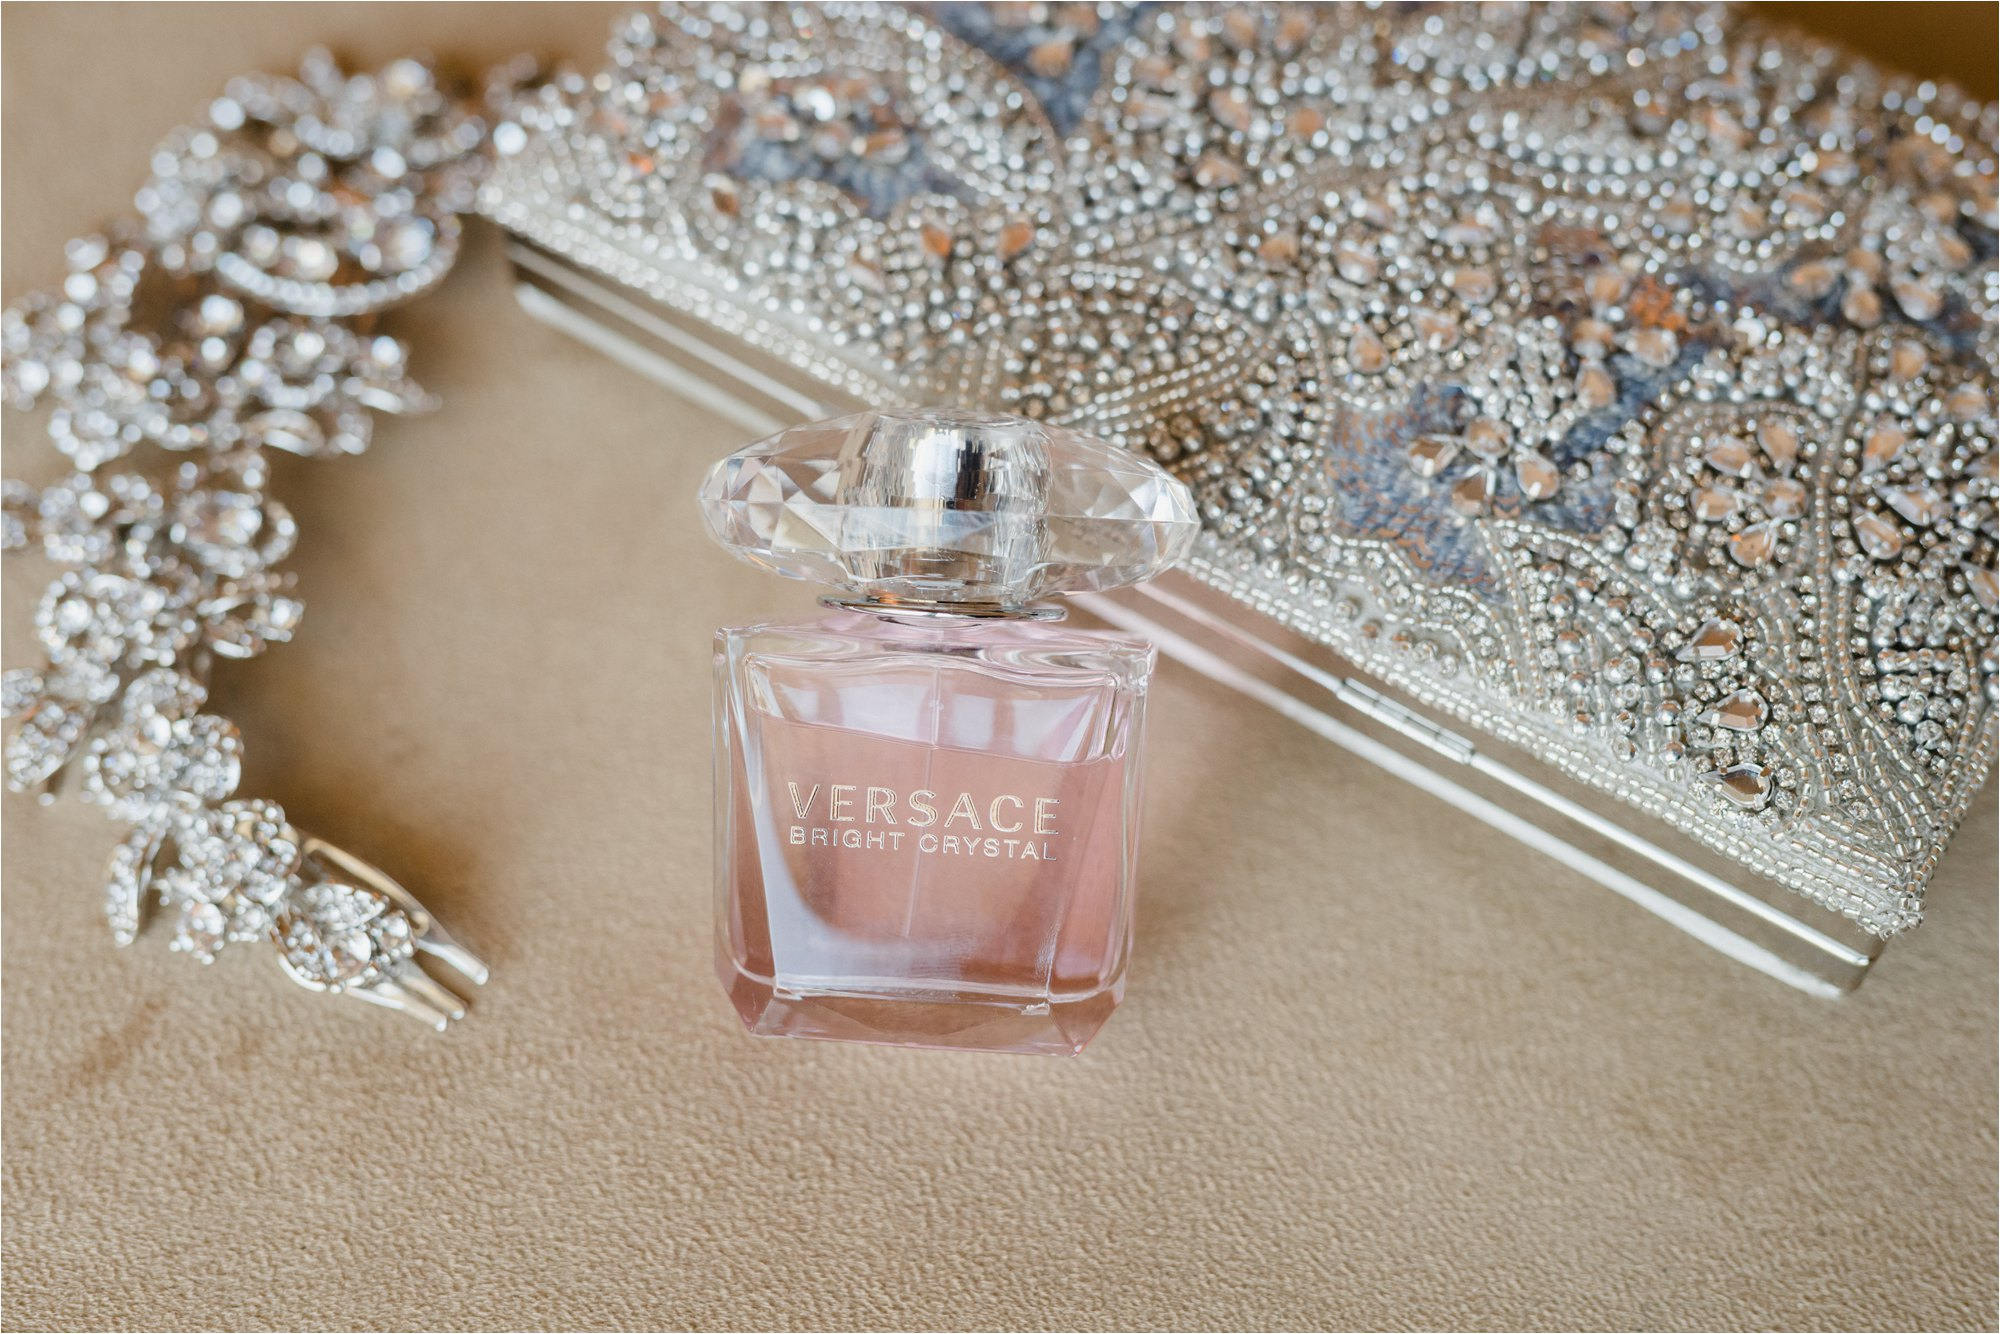 Versace Wedding Perfume and clutch